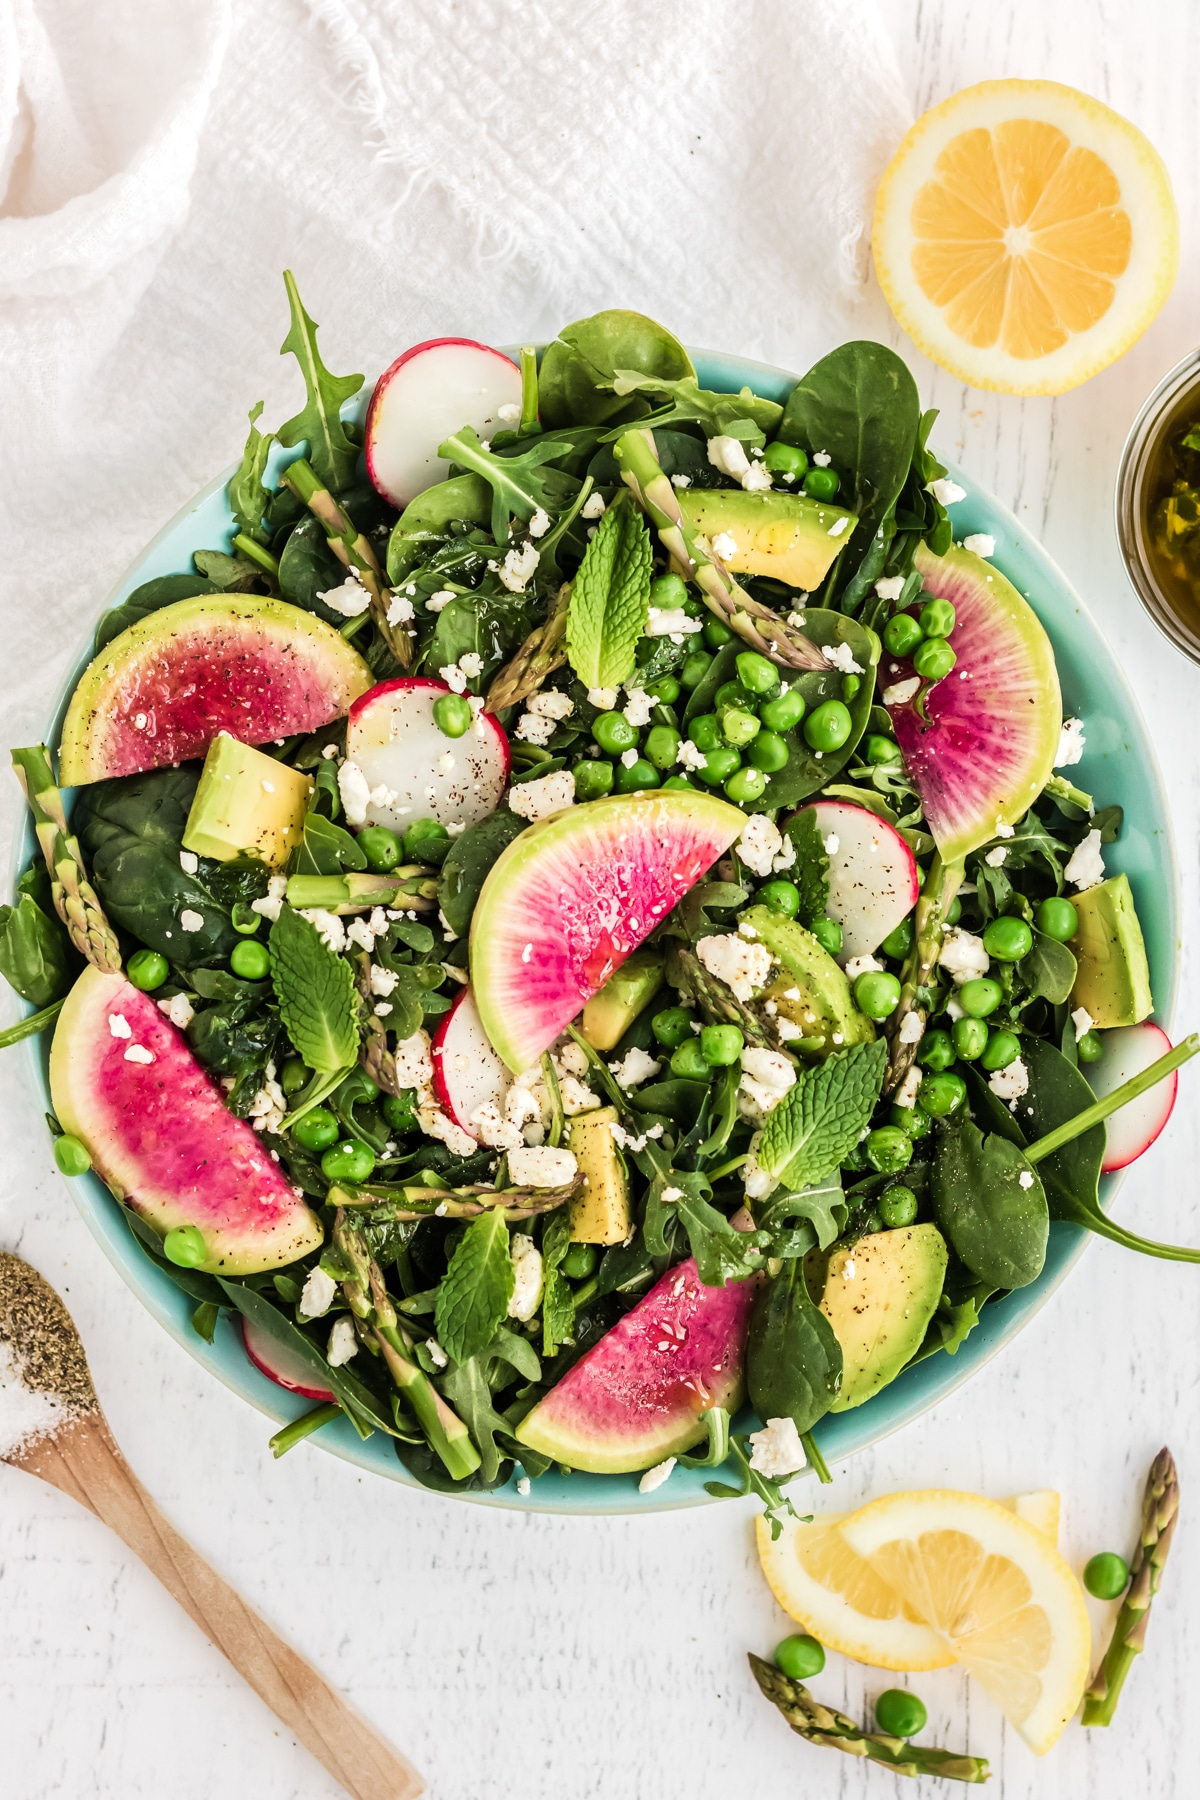 salad with peas, asparagus, watermelon radish, and feta cheese in a blue bowl on a white backgrop